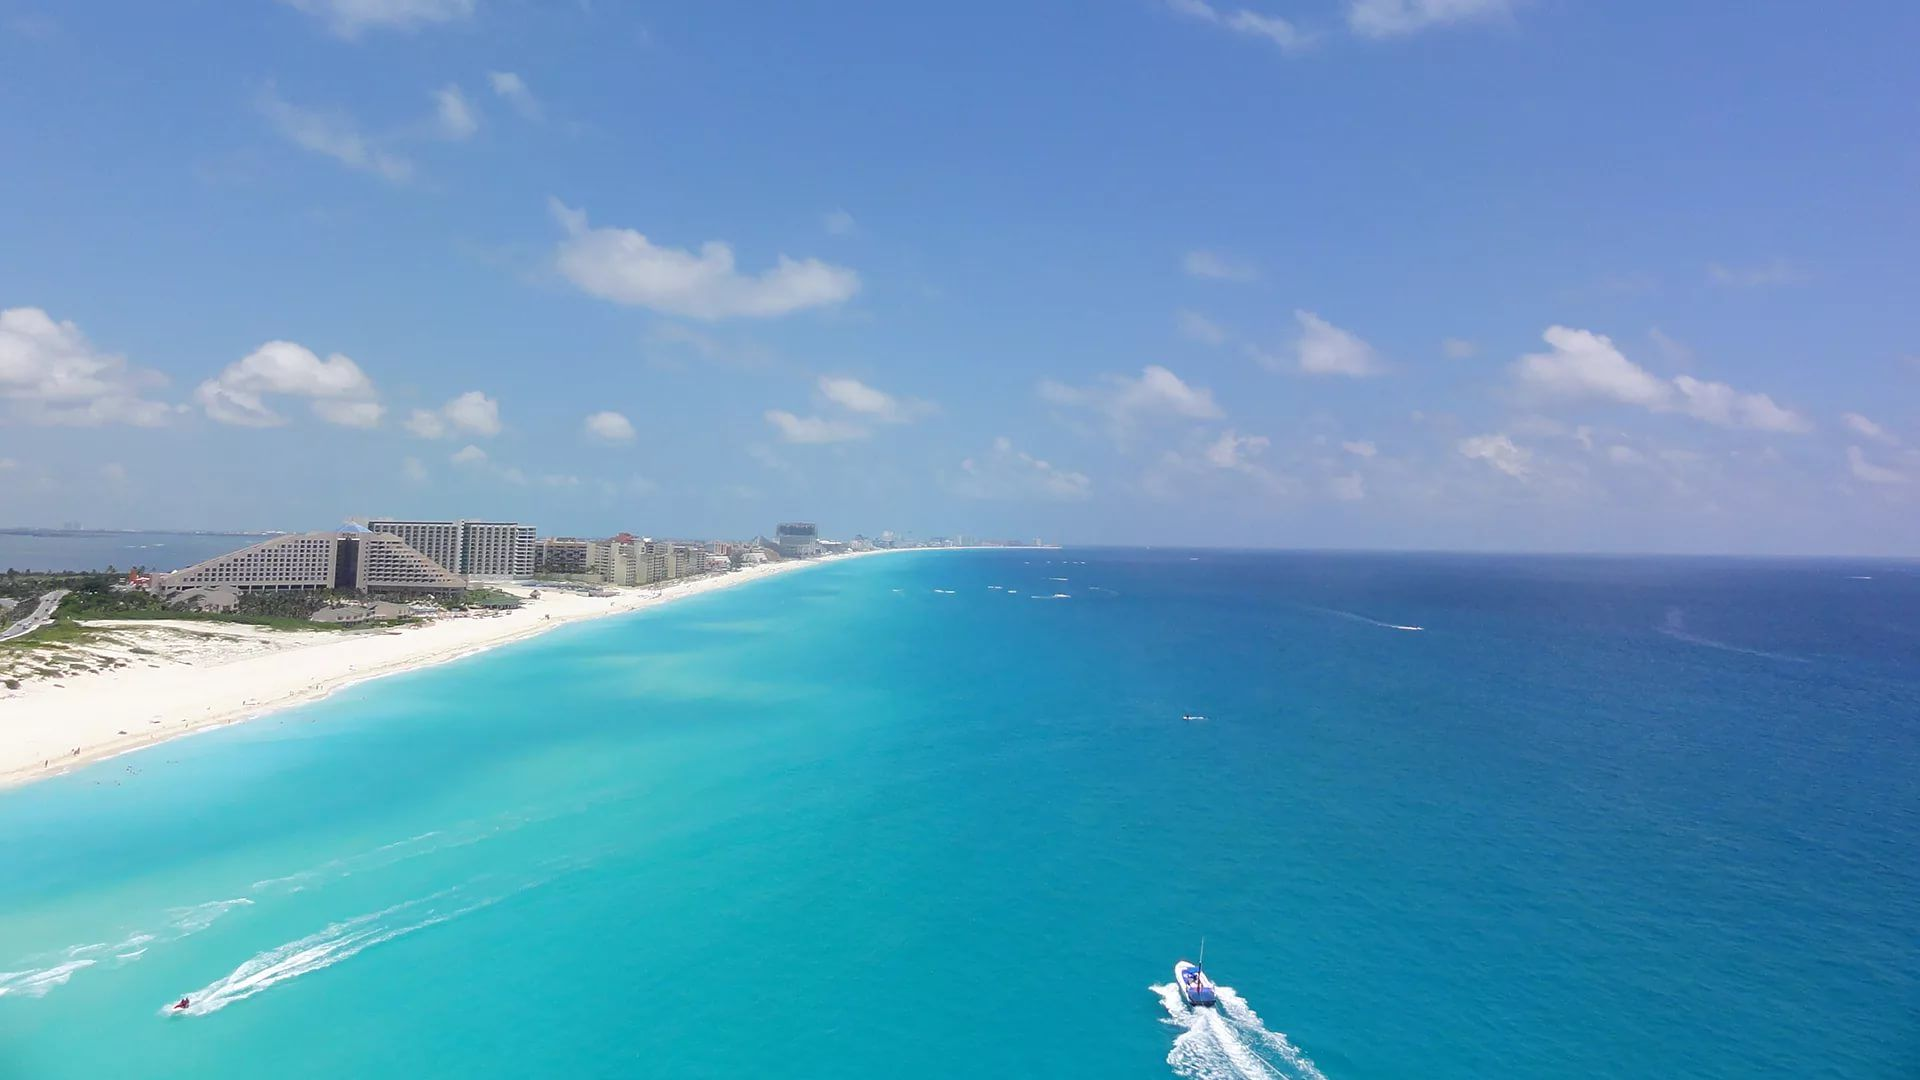 Cancun Mexico High Quality